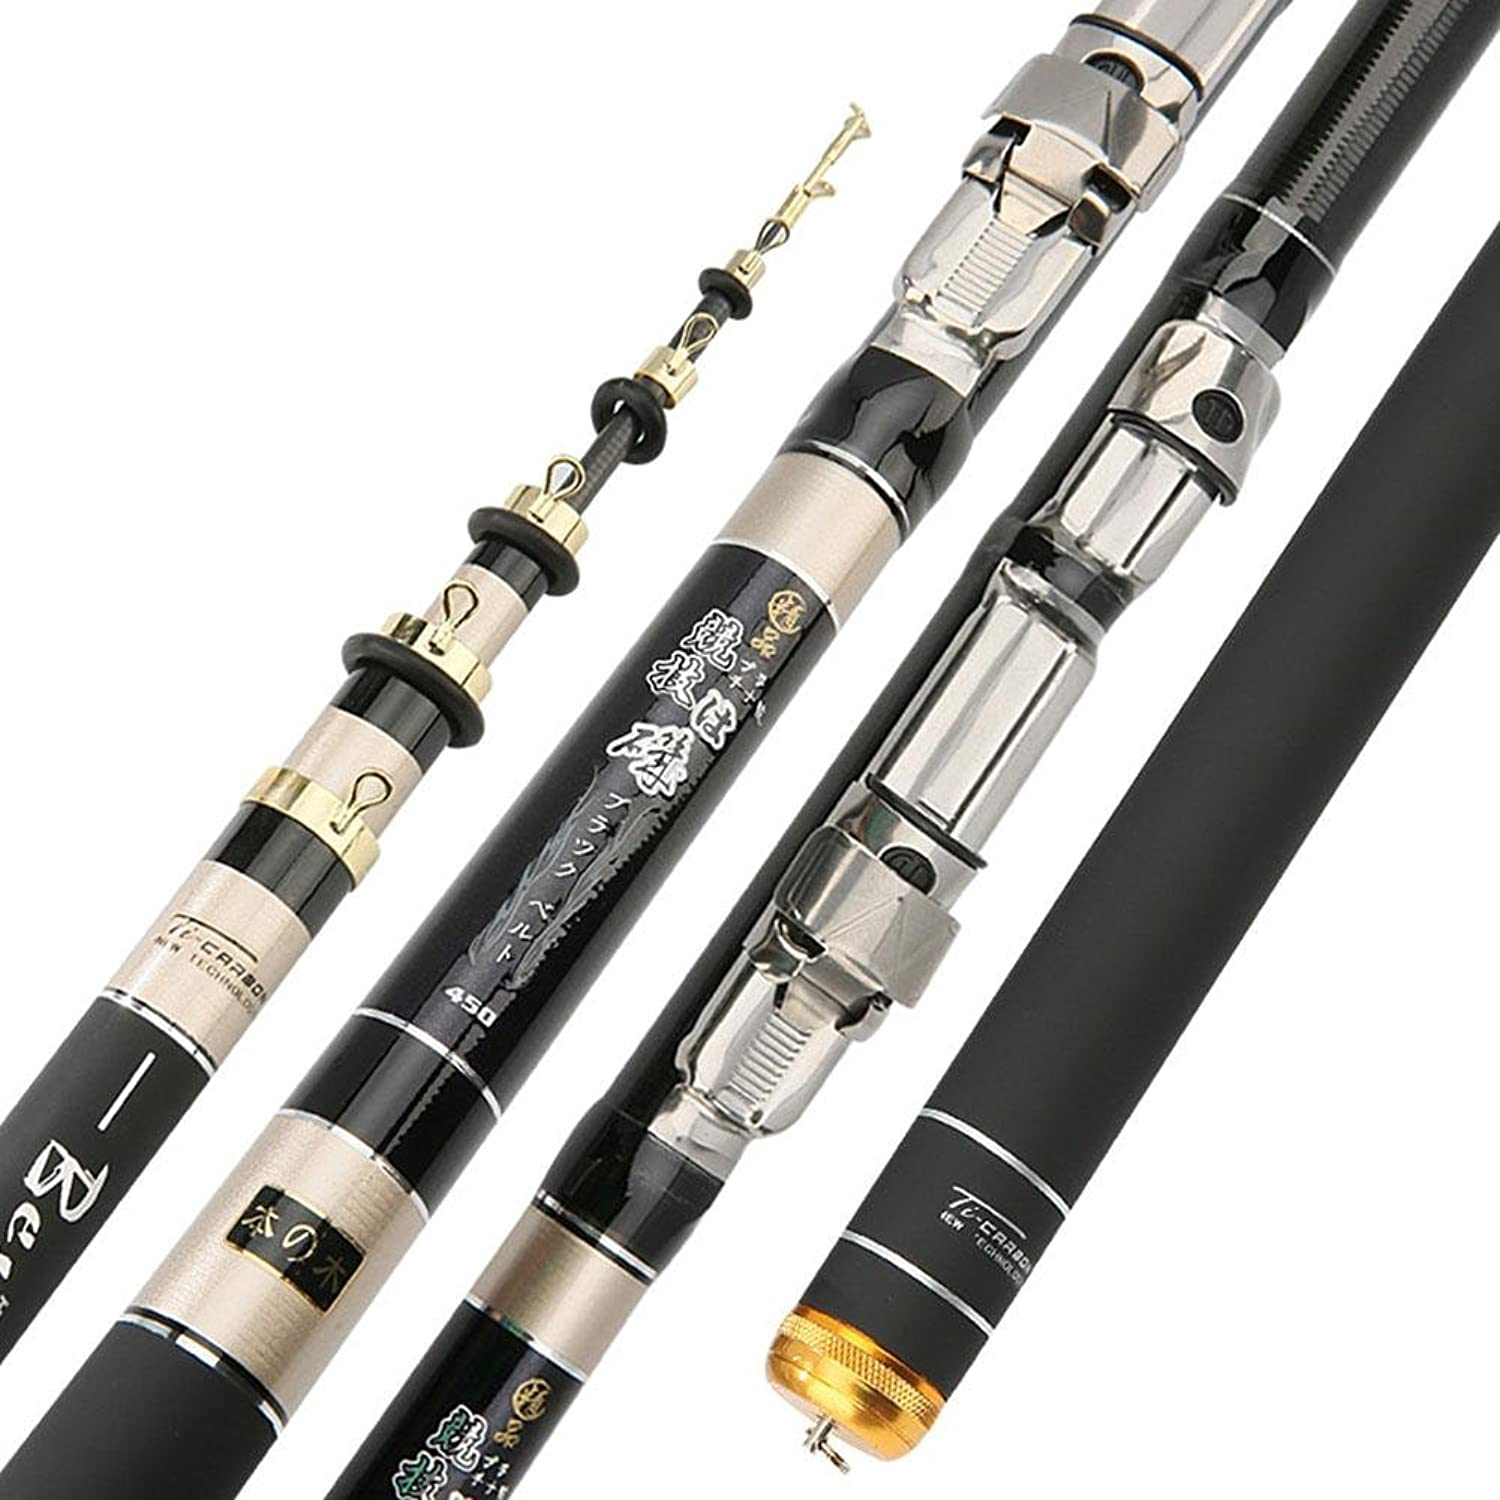 Spinning Telescopic Portable Fishing Rod Combos Travel Carbon Fishing Rod and Reel Set 3.6 4.5 5.4 6.3(m)